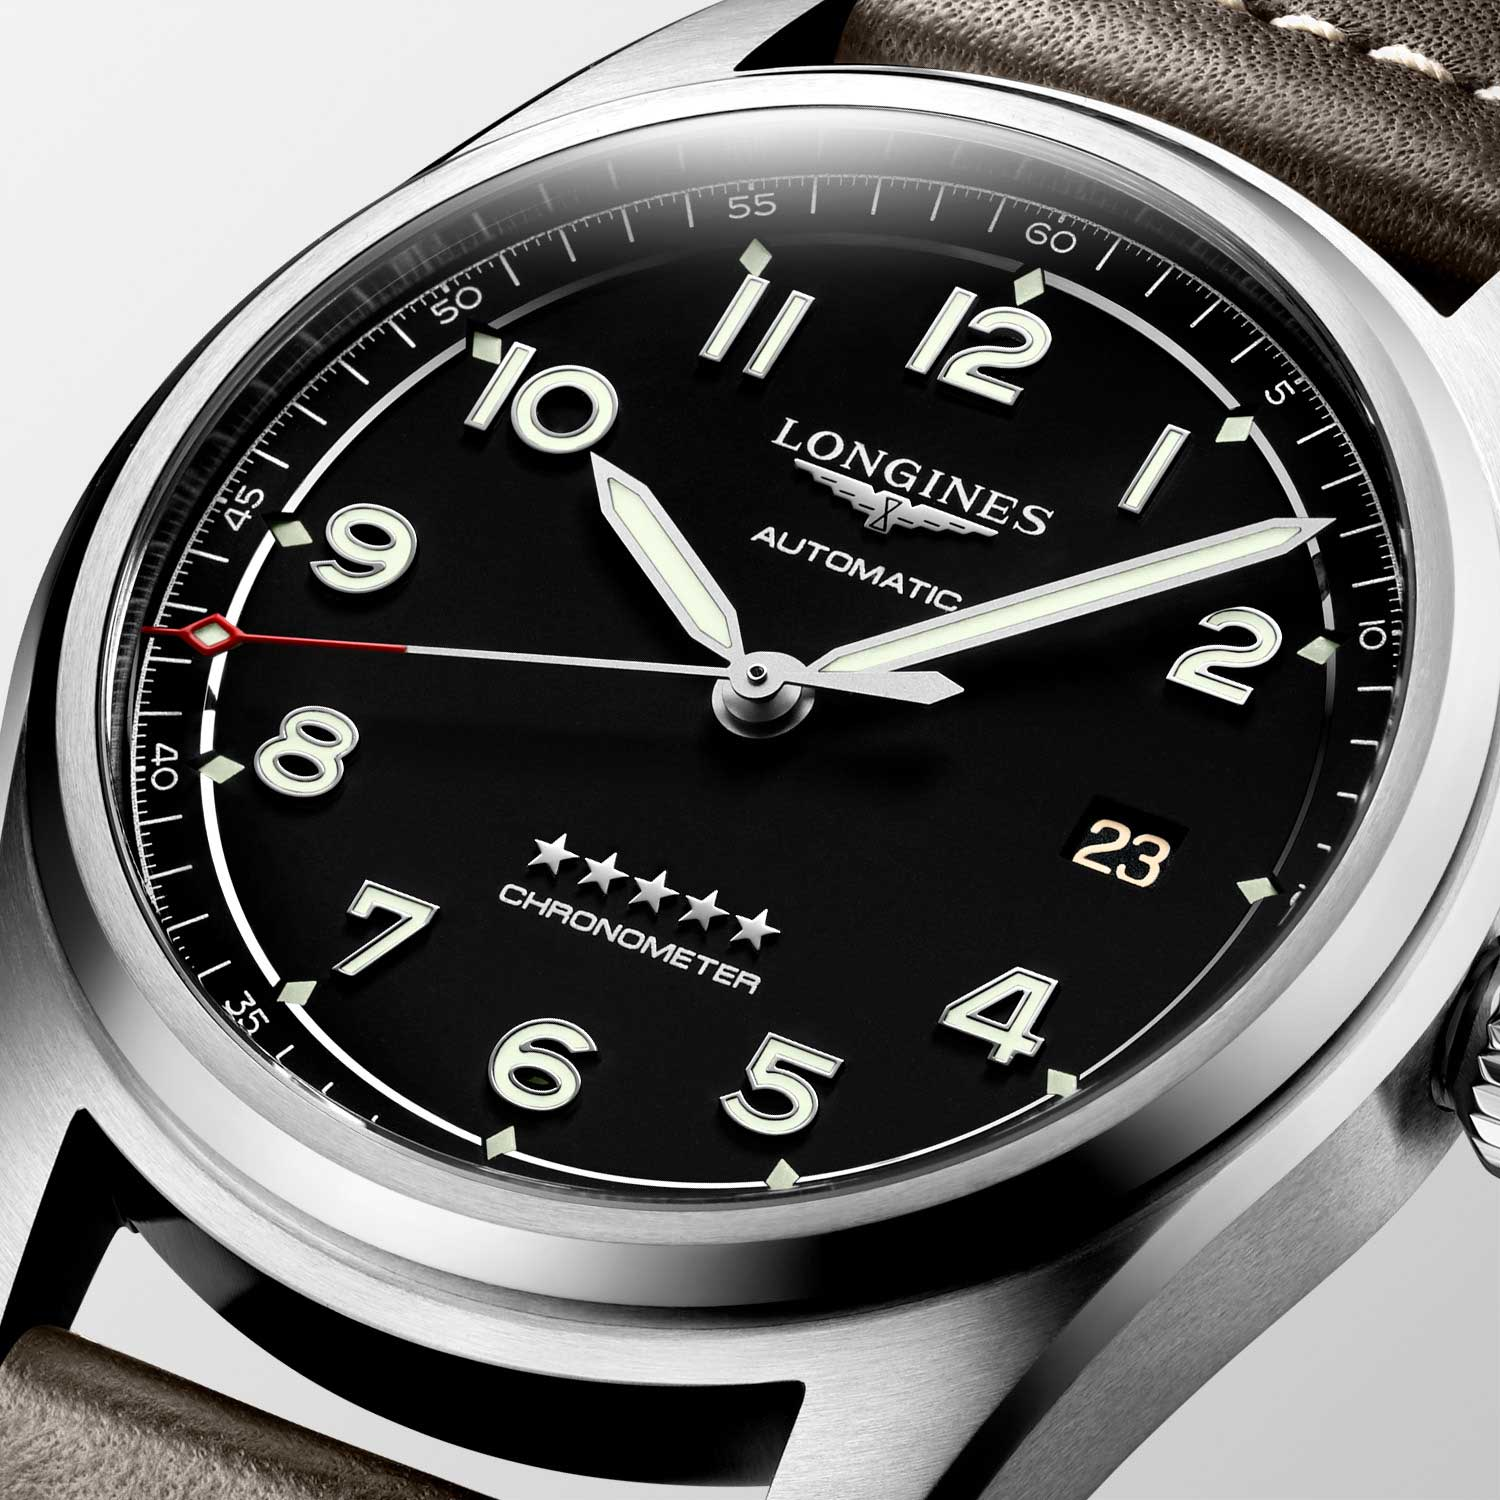 The matt black dial version of the time only addition to the Spirit collection comes in a 42 and 40mm satin and polished steel case variation; housed inside is an exclusive COSC-certified self-winding movement (L888.4) with silicon hairspring; a domed sapphire glass protects the dial set with Arabic numerals and silvered sandblasted hands coated with Super-LumiNova®